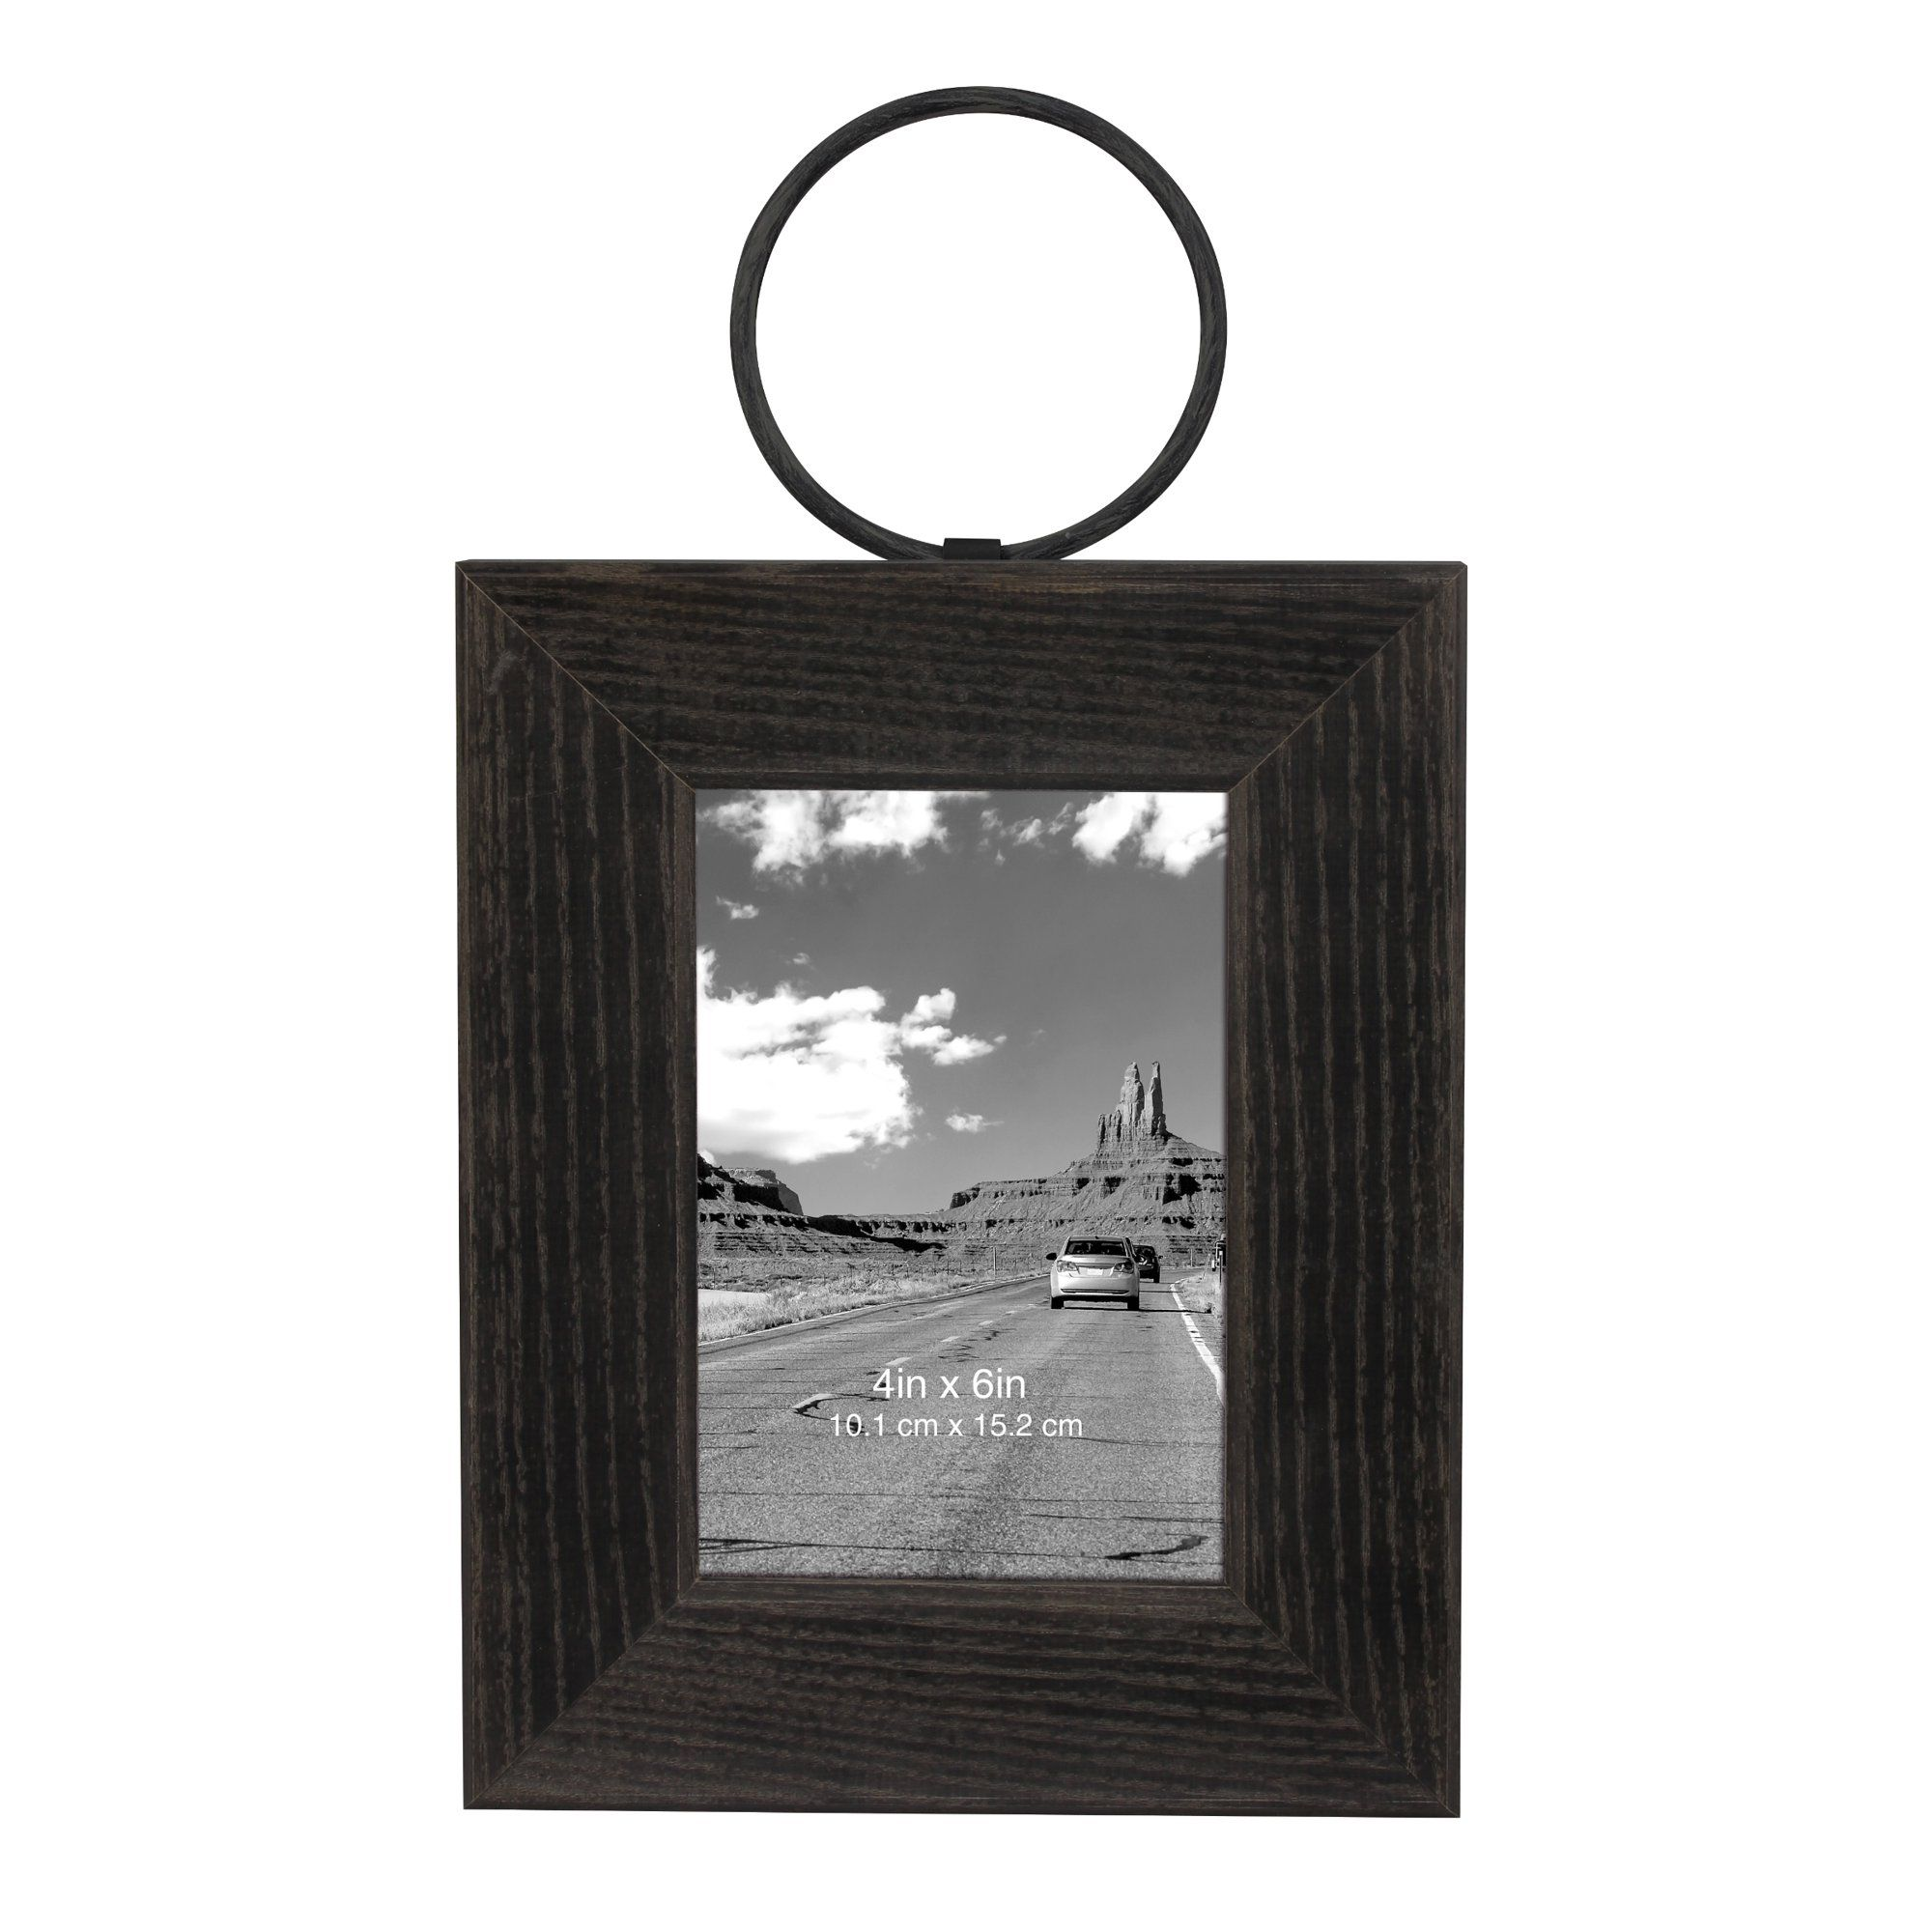 Better Homes Gardens Wooden Hanging Frame With Metal Ring Walmart Com In 2020 Hanging Frames Unique Picture Frames Rustic Picture Frames